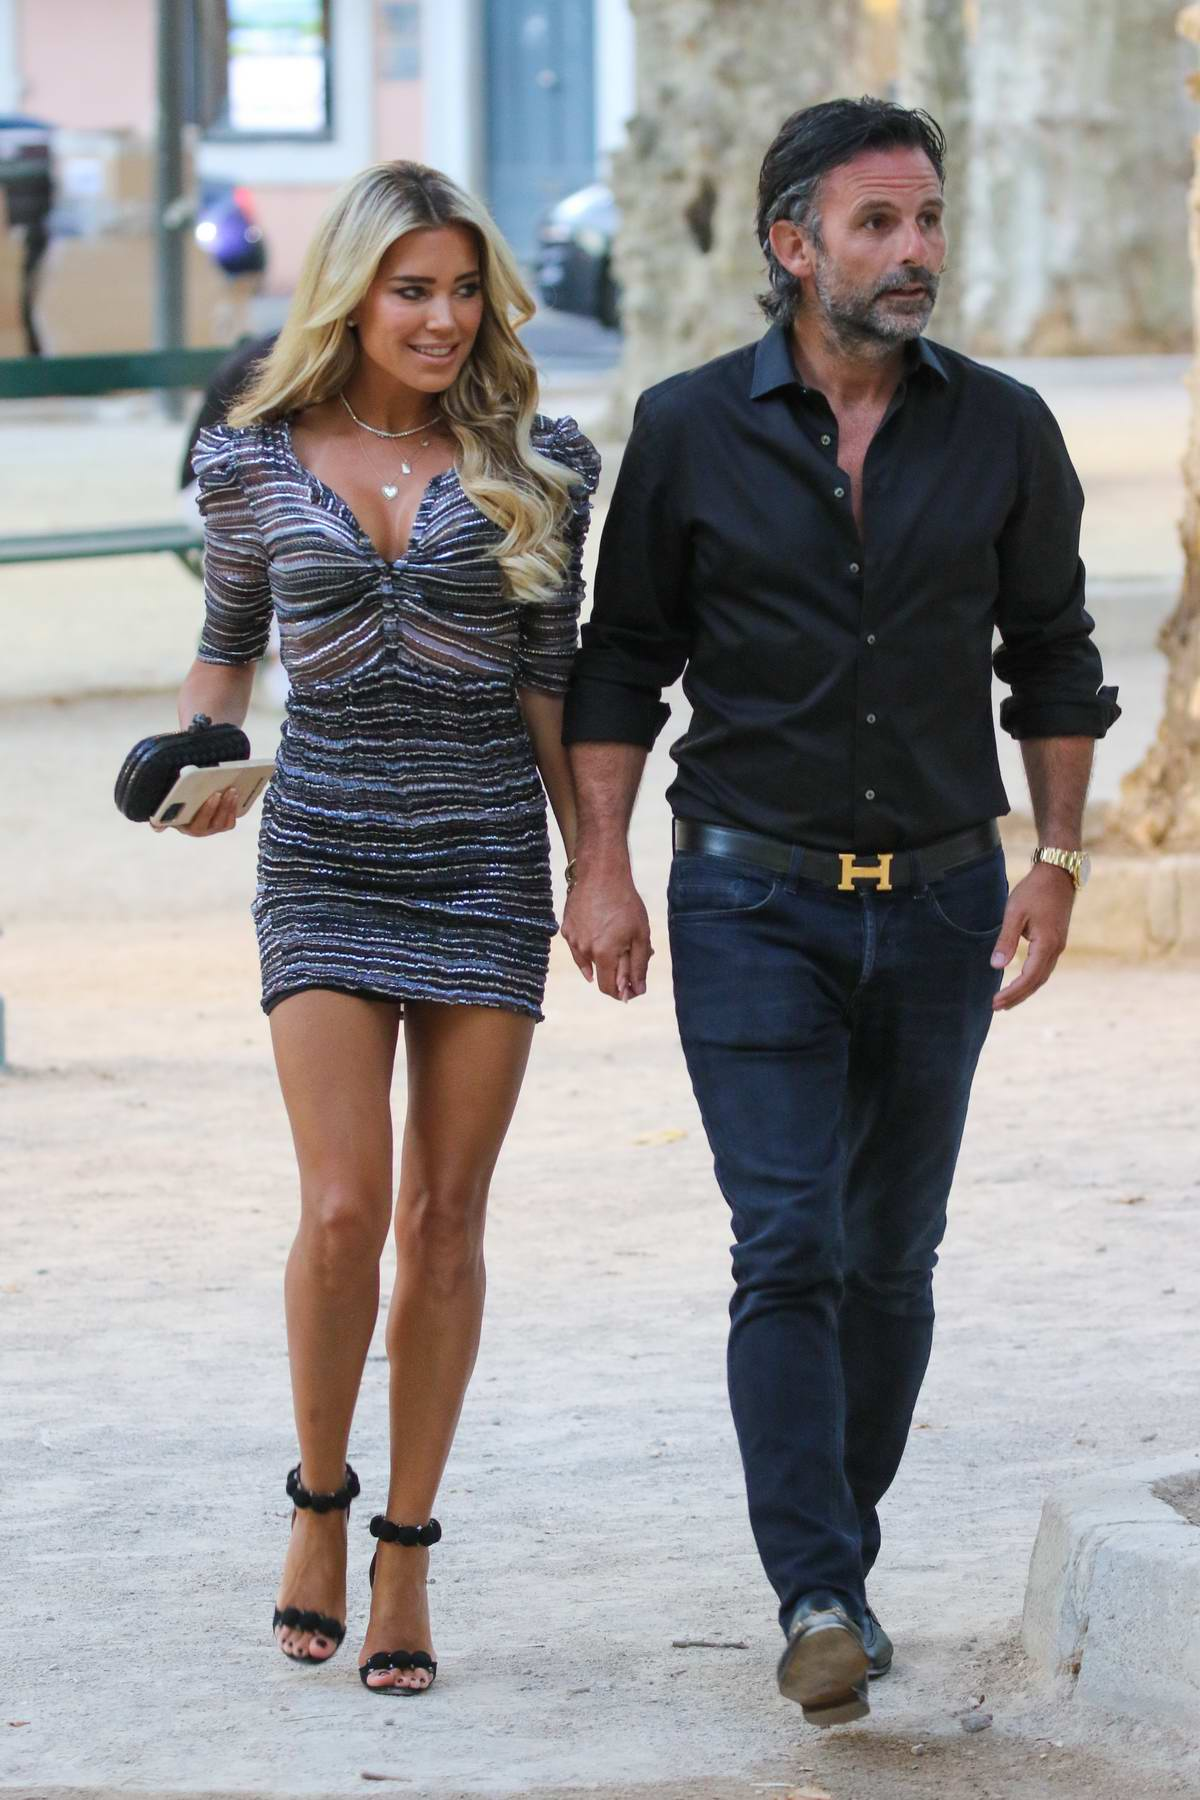 Sylvie Meis wears a striped mini dress while out with Niclas Castello in Saint-Tropez, France